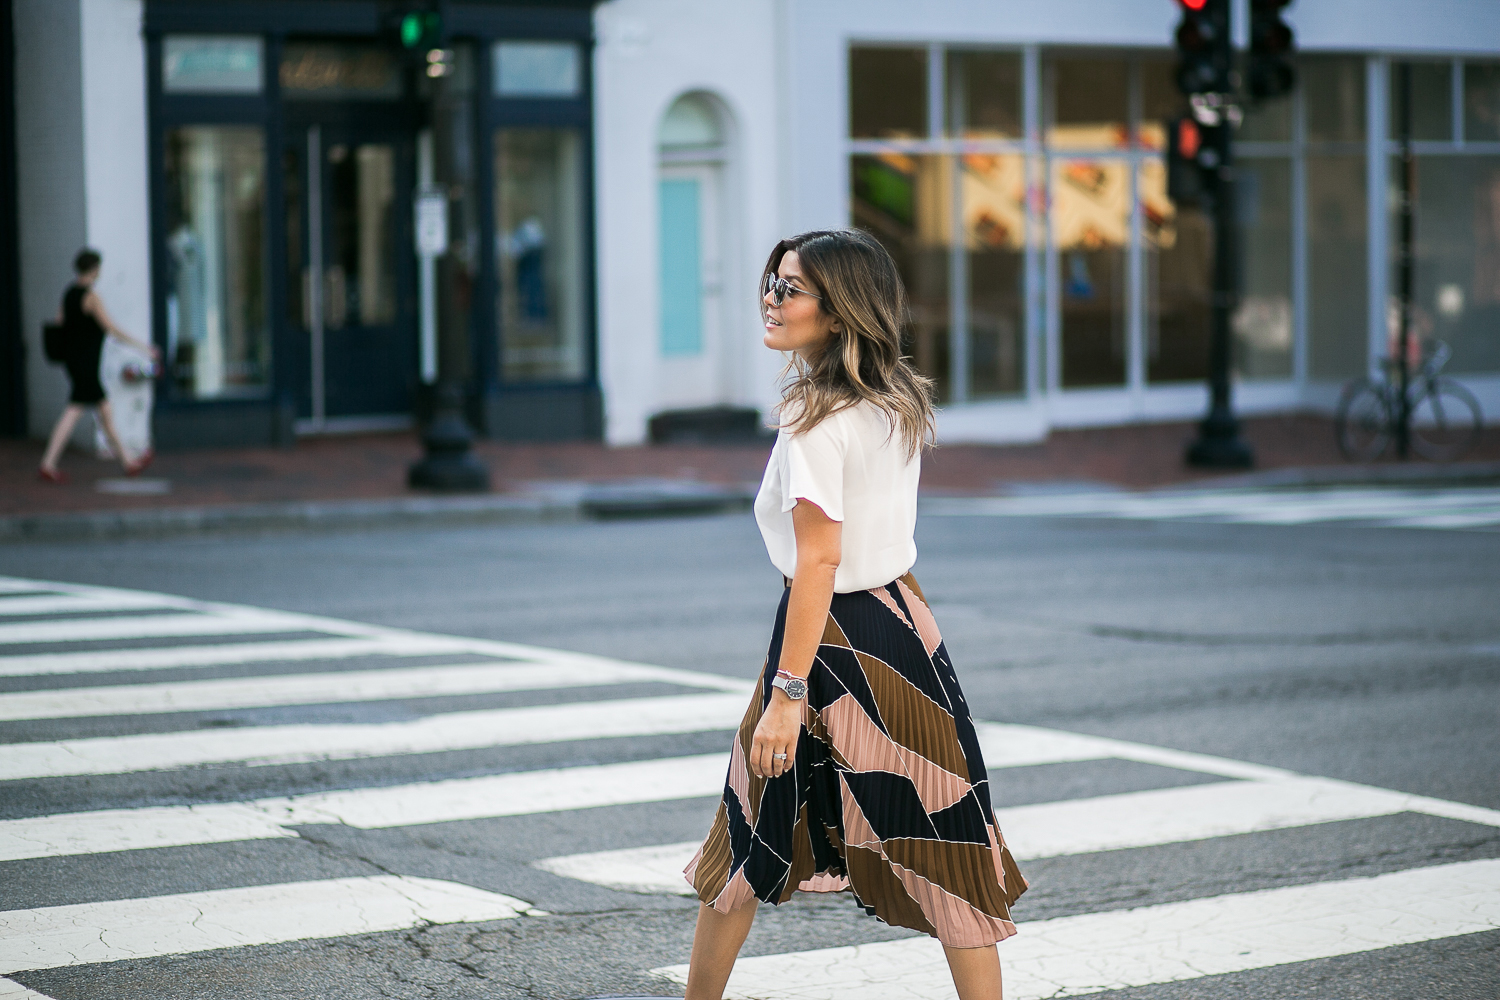 Style MBA wears pleated skirt